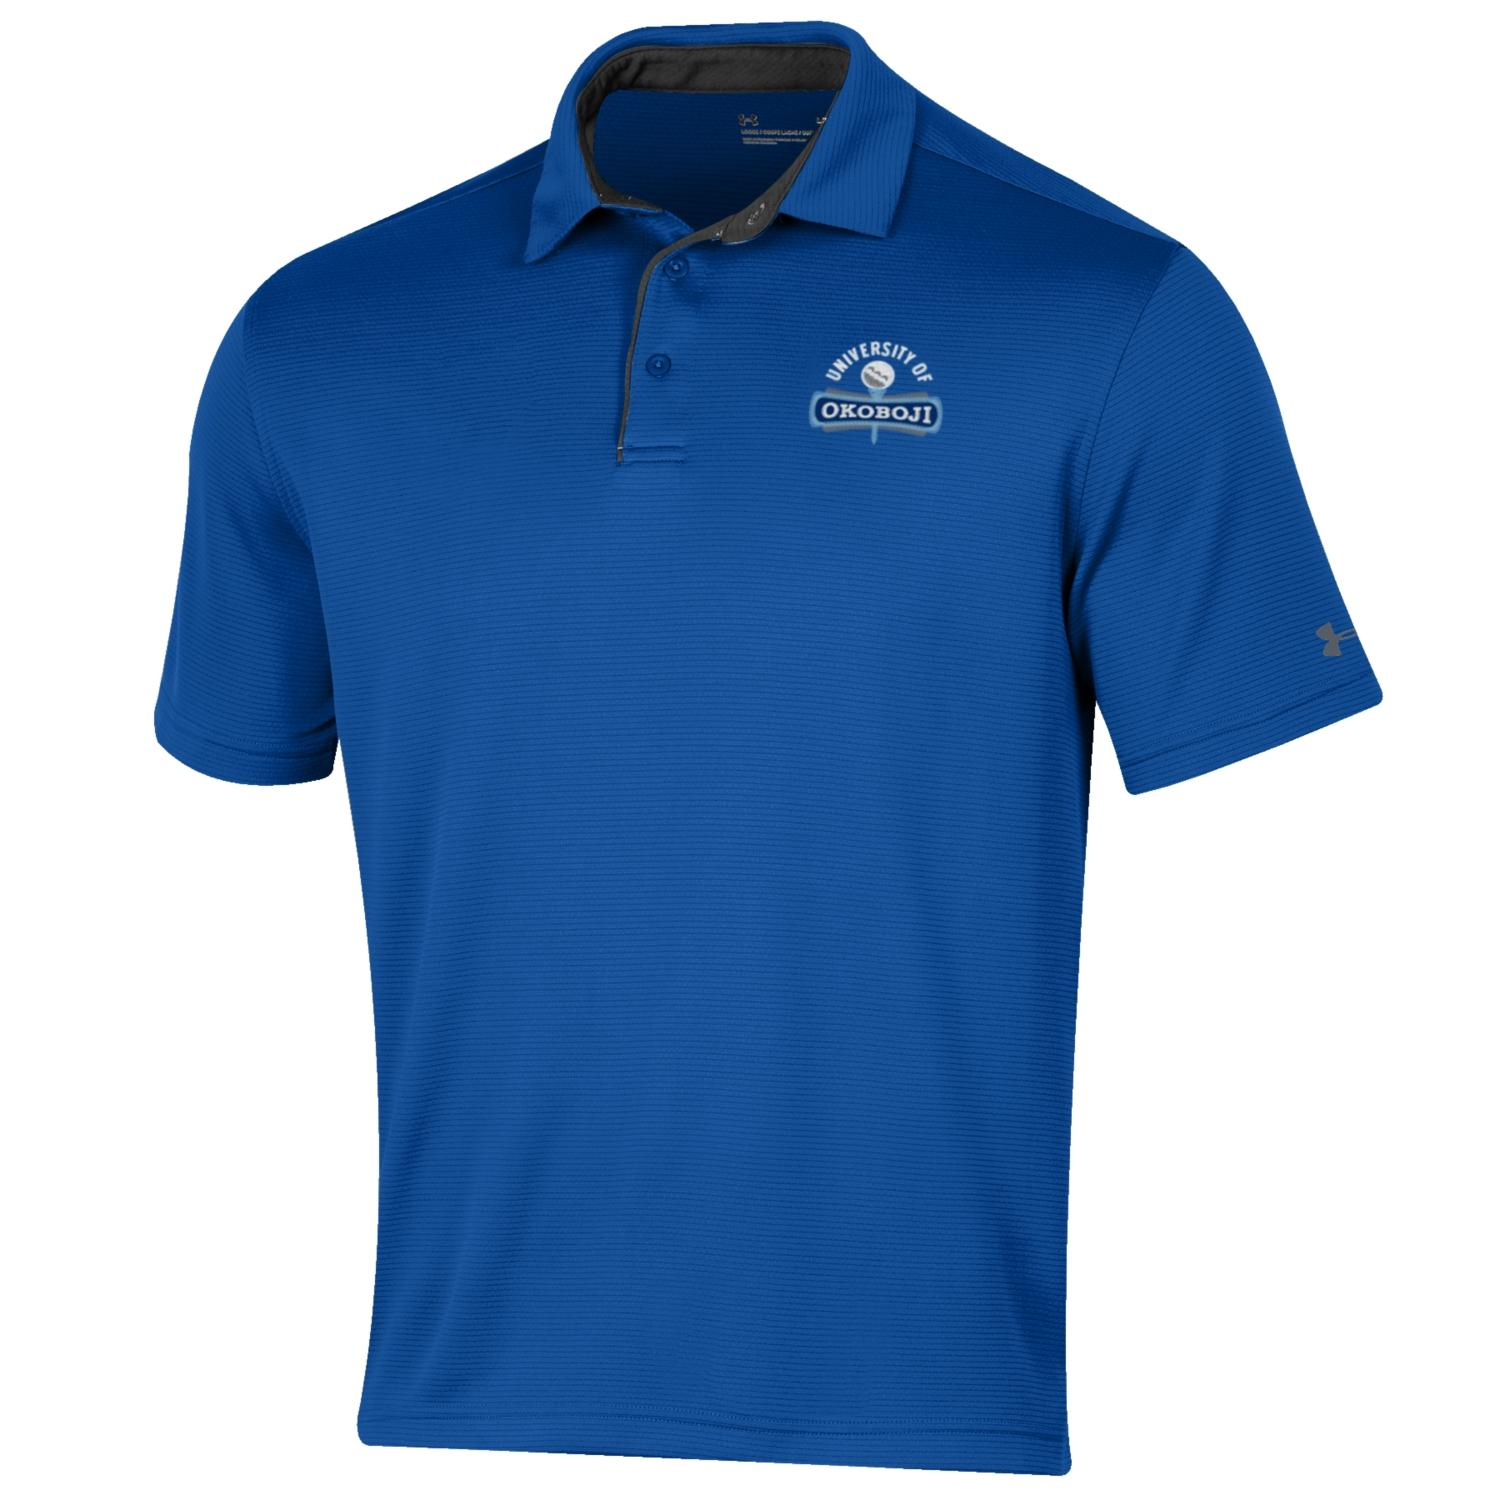 Okoboji Under Armour Tech Polo - Royal